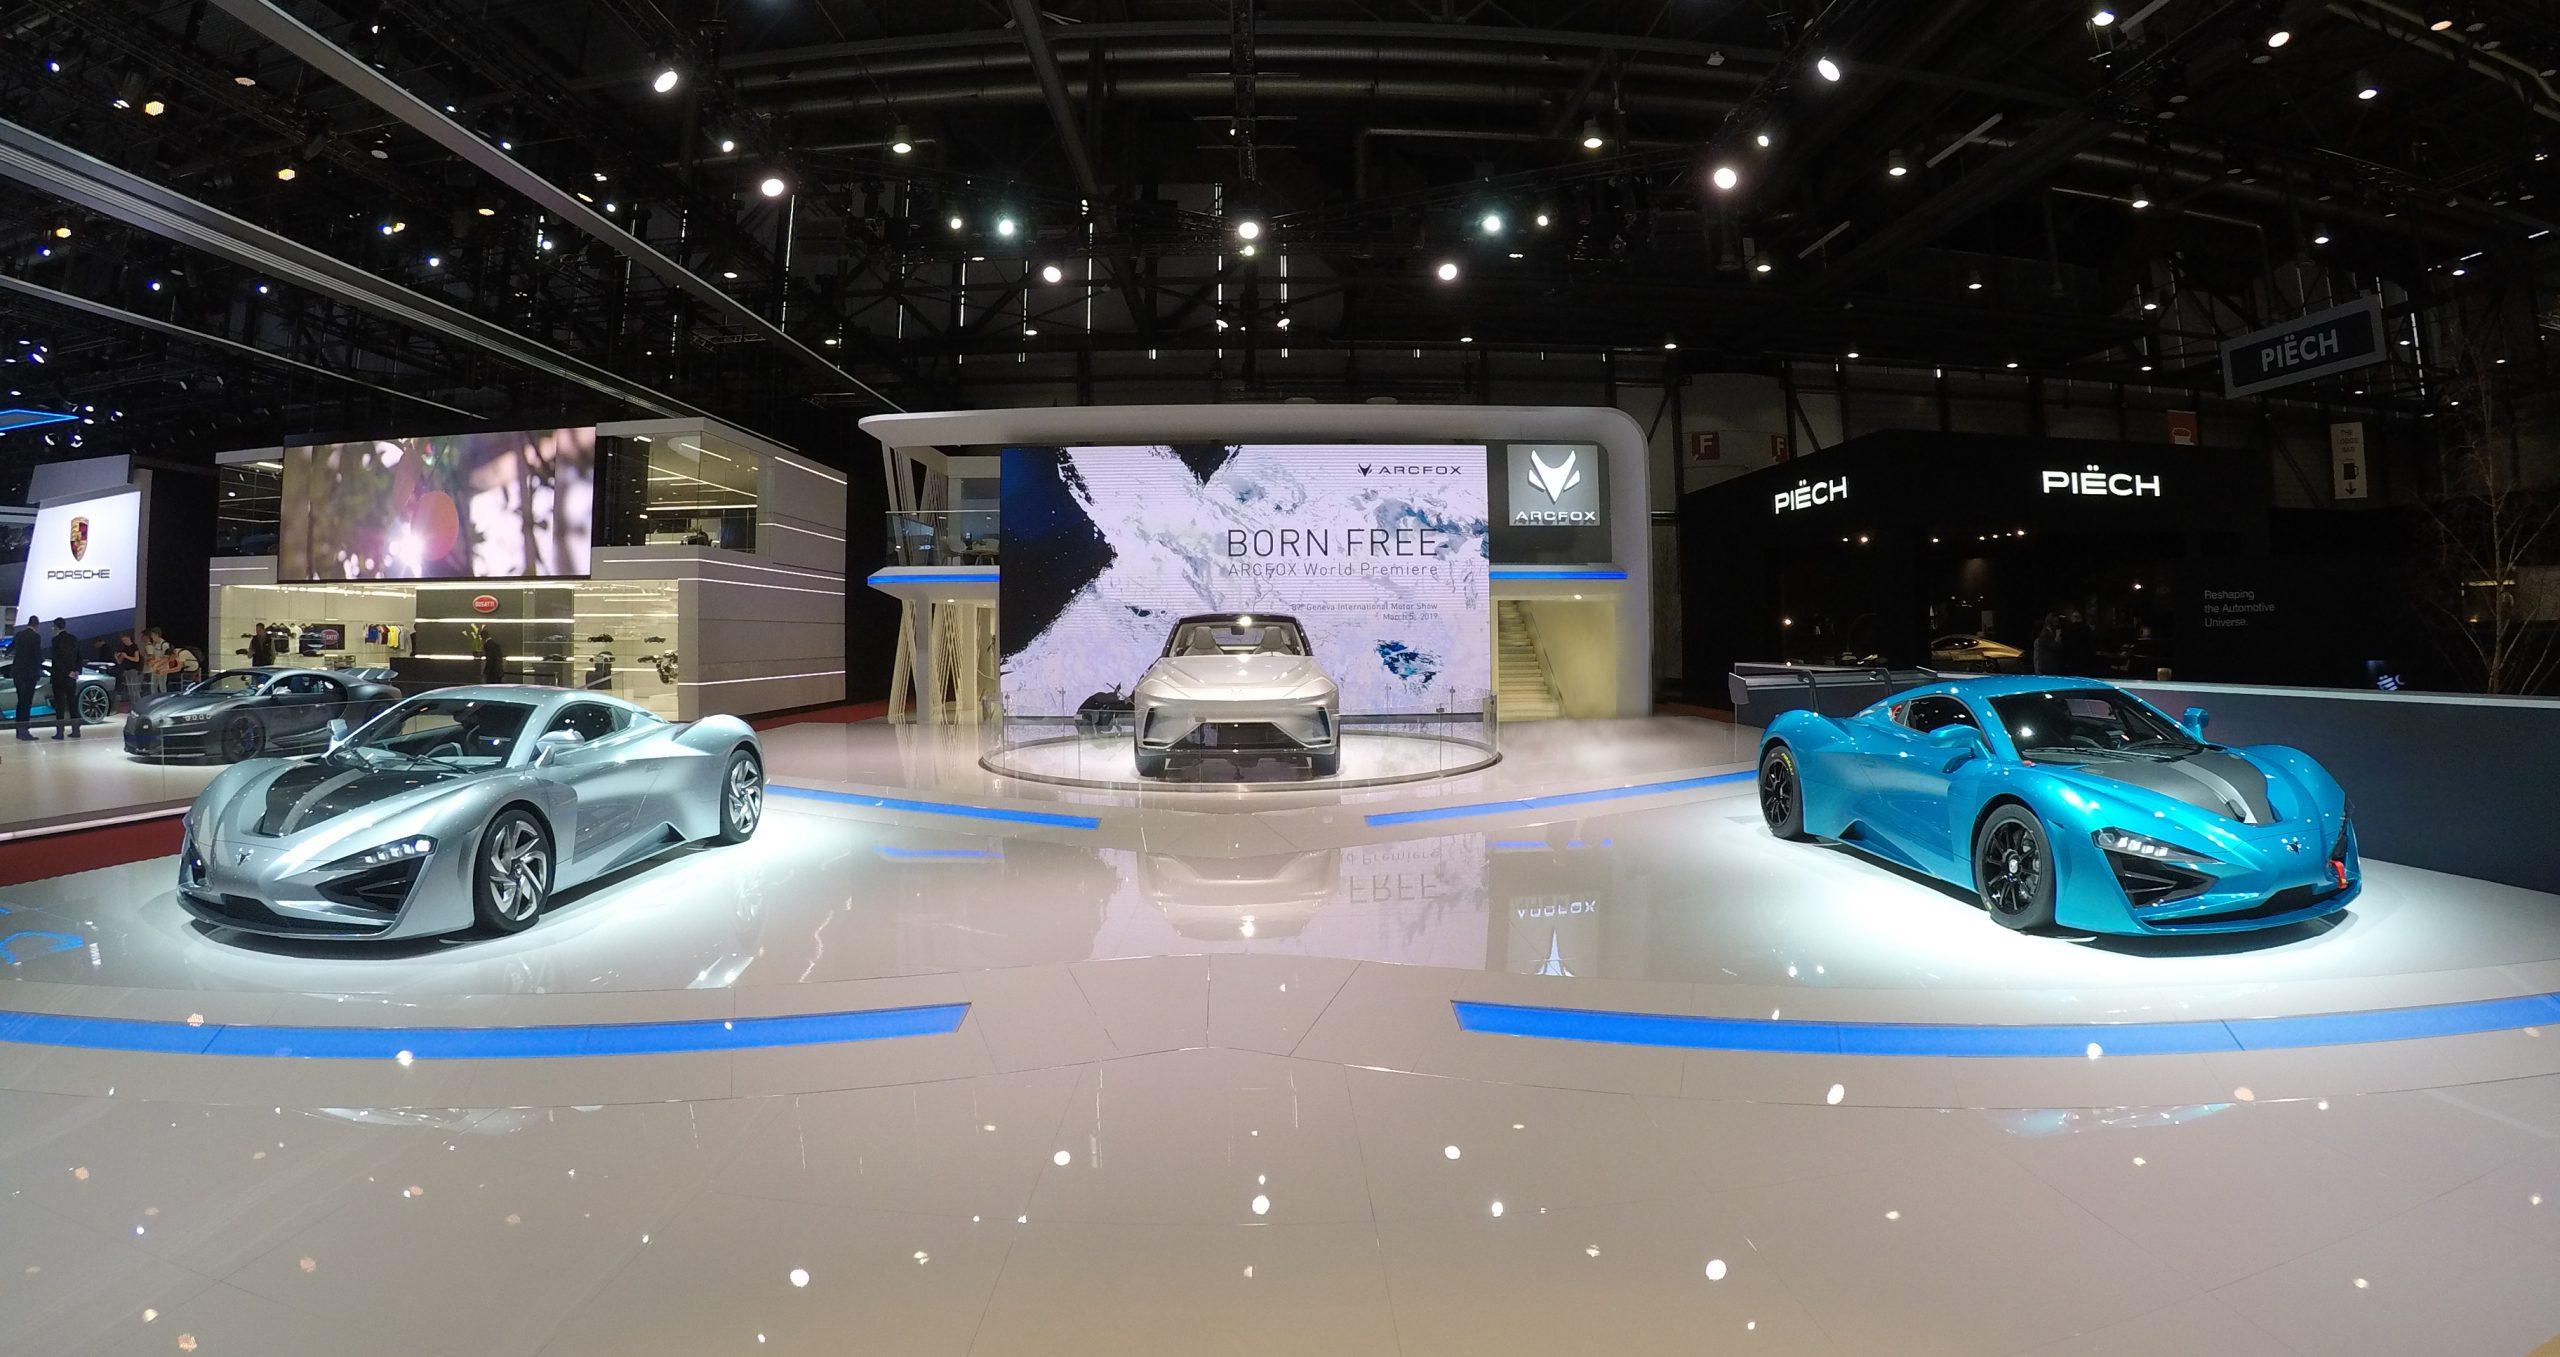 QEV TECHNOLOGIES EXHIBITING THREE CARS AT SHANGHAI MOTOR SHOW DEVELOPED AND PRODUCED FOR CHINESE CLIENTS, QEV